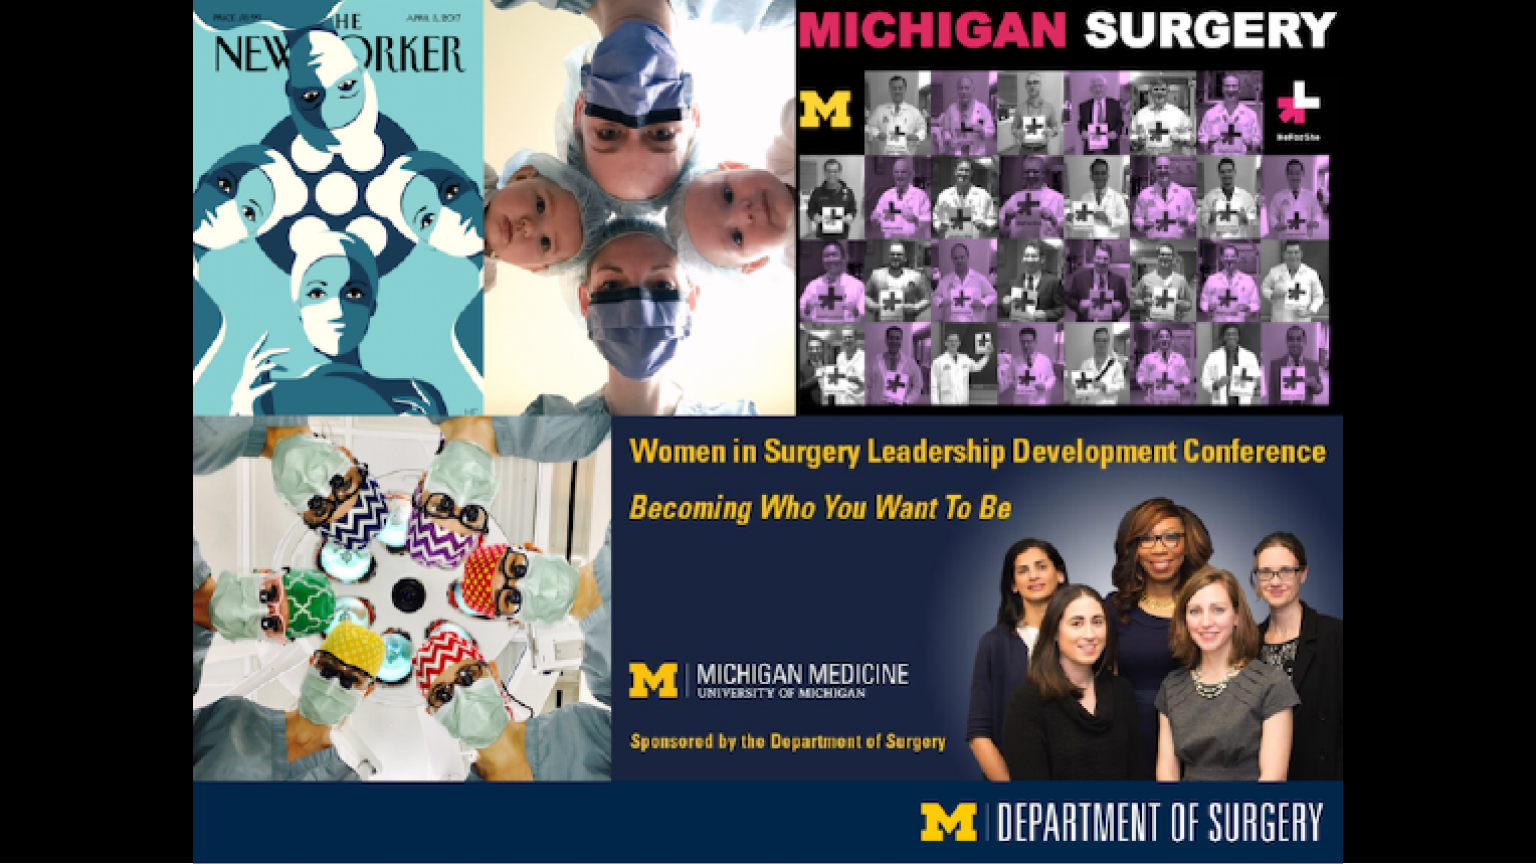 """Collage of women surgeons in the OR re-creating a similar New Yorker cover, male faculty holding #HeForShe signs, event flyer for the Women in Surgery Leadership Development Conference - twentieth slide of """"This Is What We Stand For"""" presentation"""